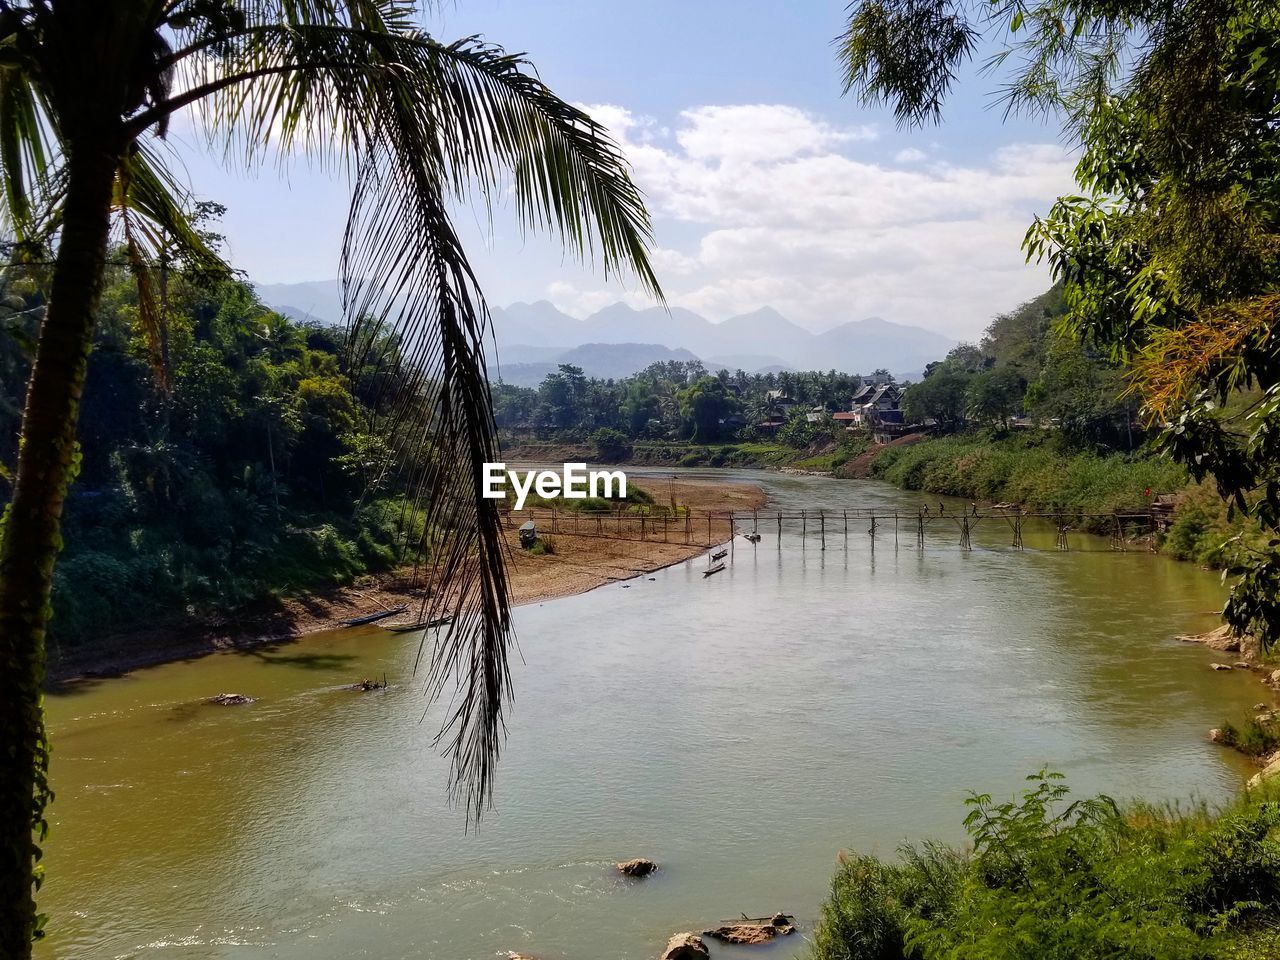 water, tree, plant, sky, palm tree, nature, beauty in nature, tranquility, tropical climate, tranquil scene, scenics - nature, growth, day, mountain, no people, land, cloud - sky, outdoors, river, coconut palm tree